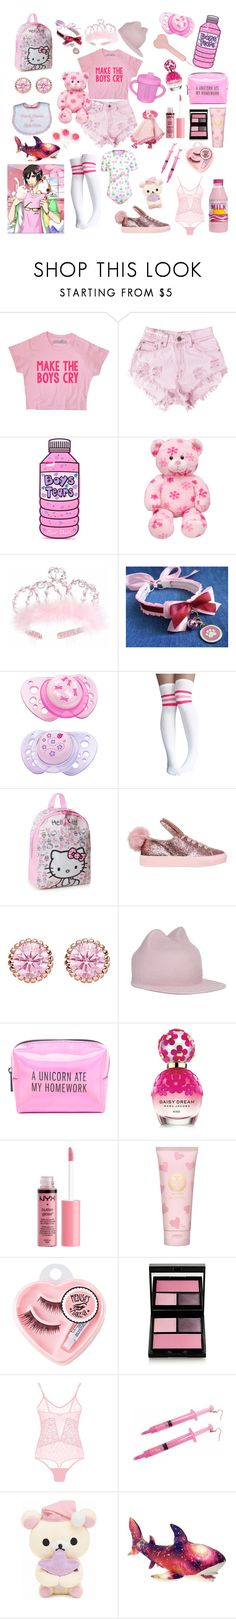 """My bad little cutie!💞💖"" by rainythedarklord ❤ liked on Polyvore featuring Levi's, cutekawaii, CHICCO, Hello Kitty, Minna Parikka, Thomas Sabo, Maison Michel, Pinch Provisions, Marc Jacobs and Charlotte Russe"